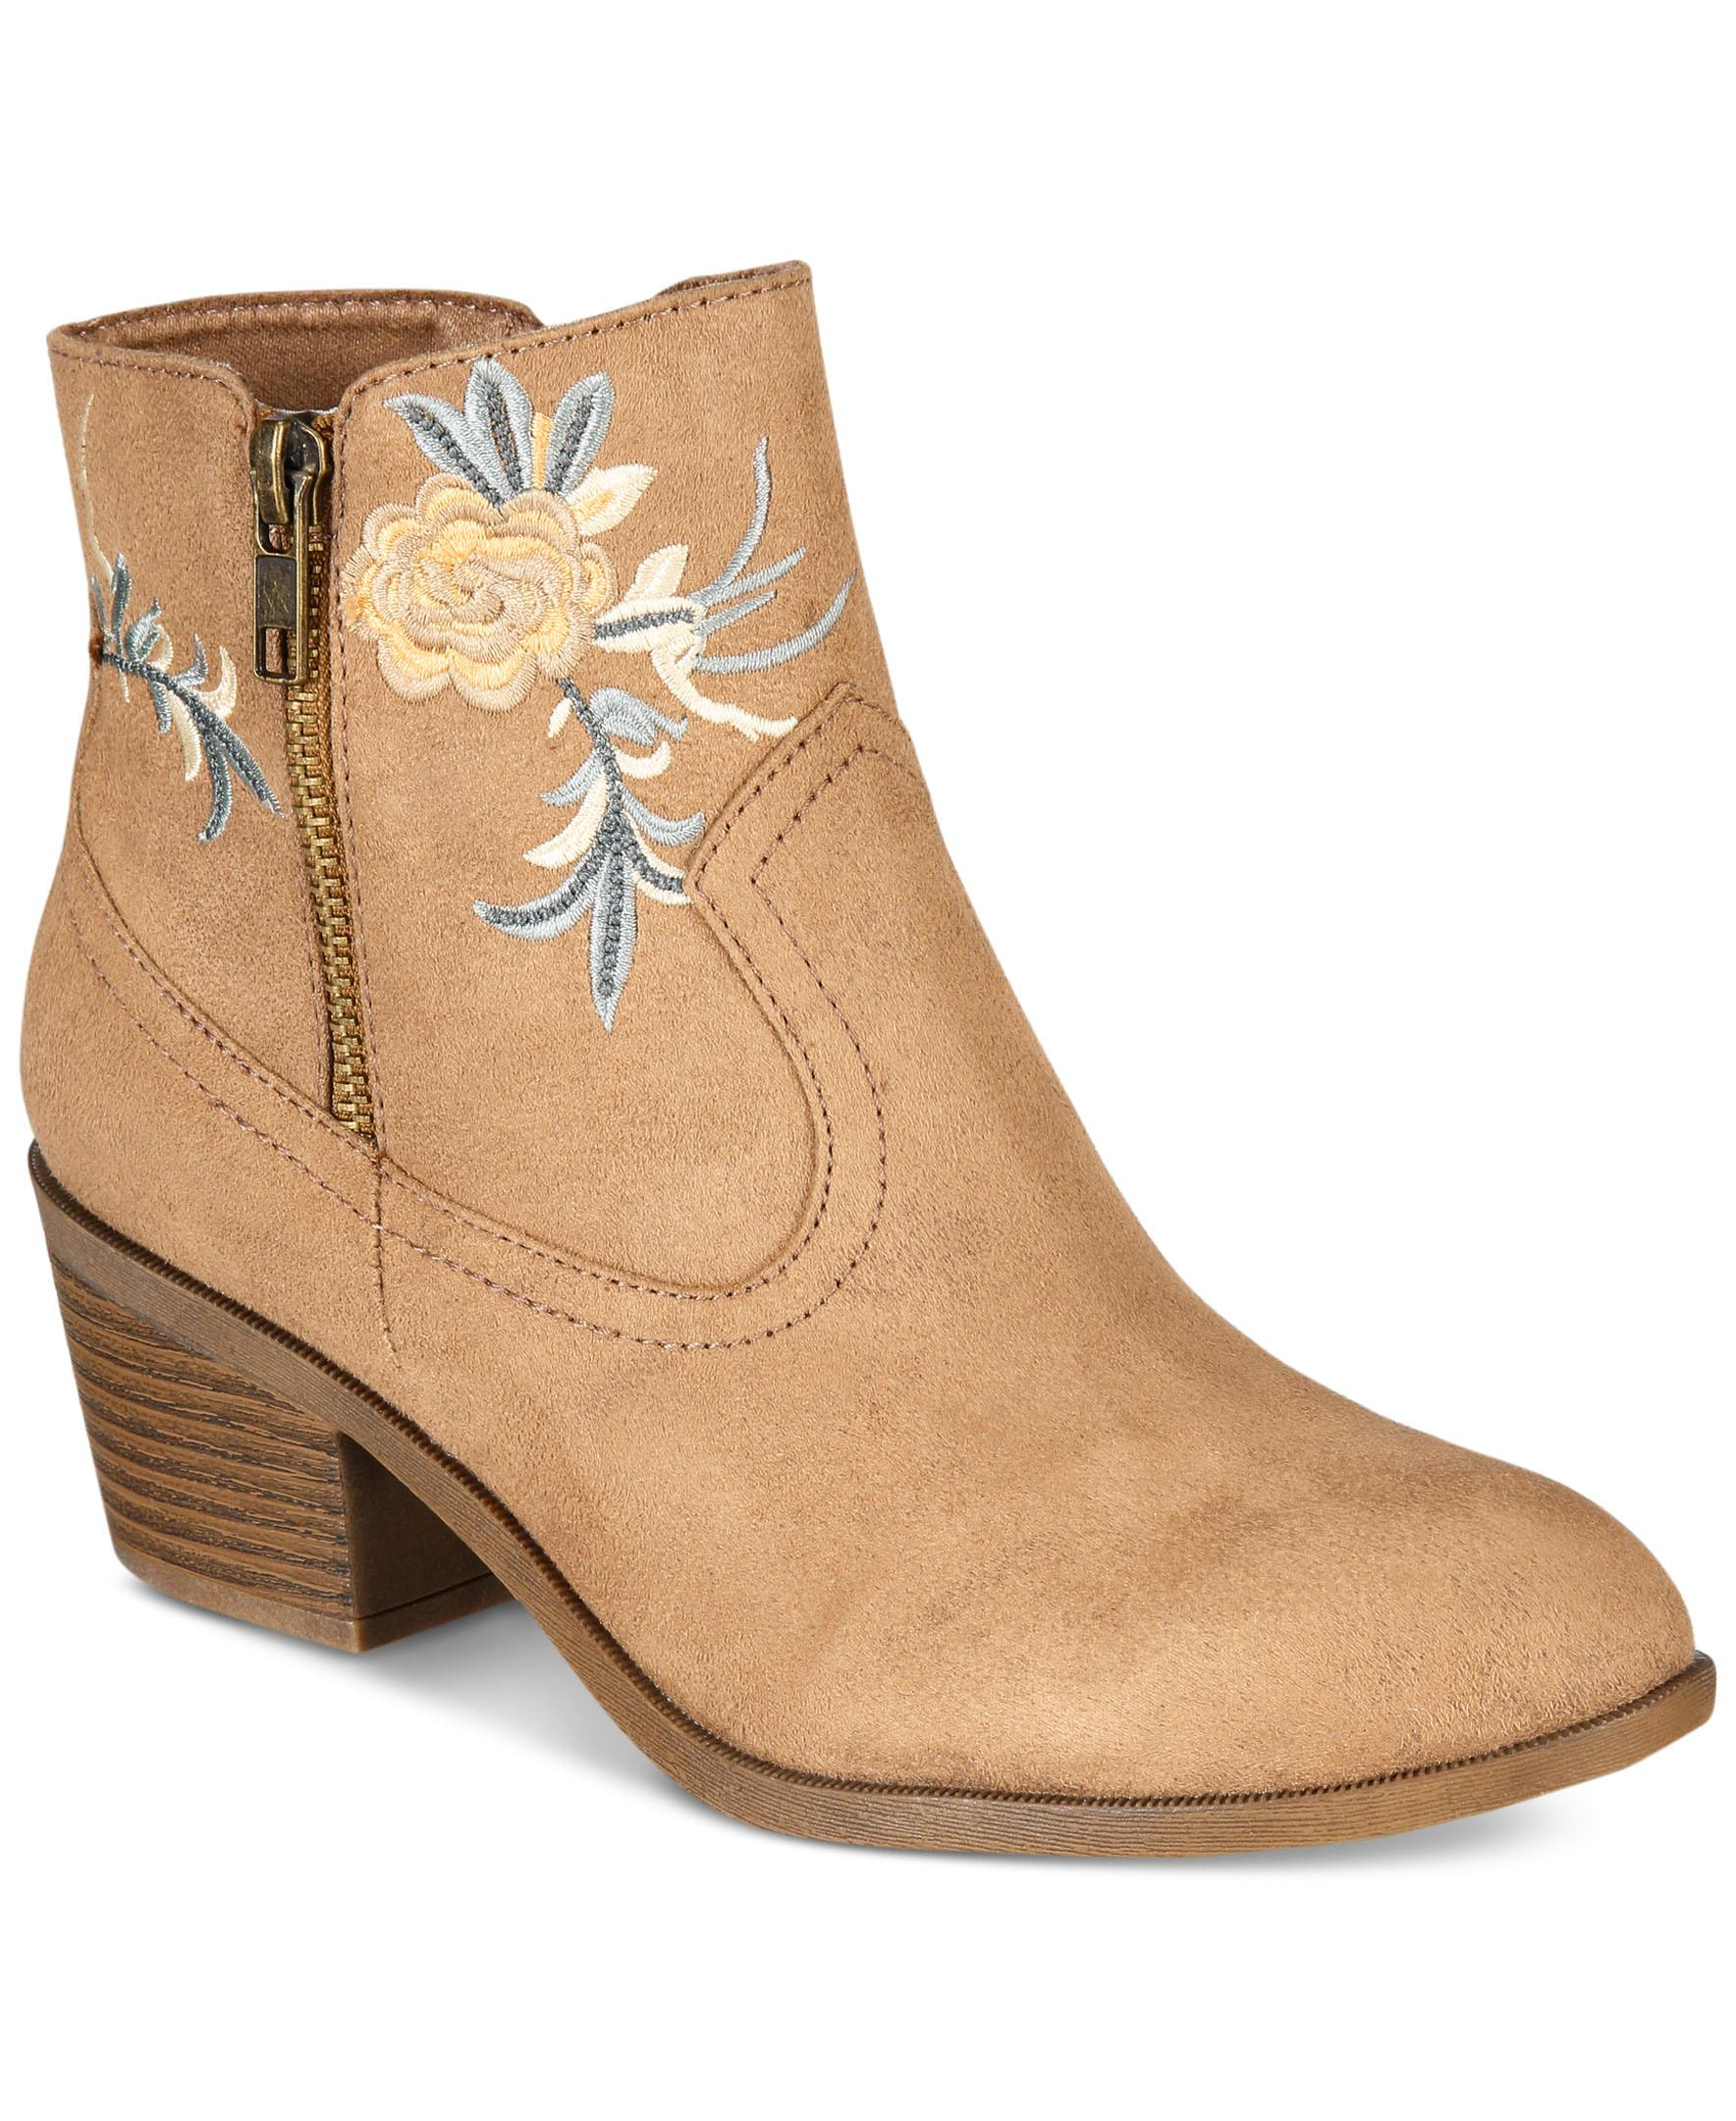 ZIGIny Loraina Booties from Macy's - on sale for $29.40, originally $49.00 // macys.com (Photo courtesy: Macy's)<p></p>